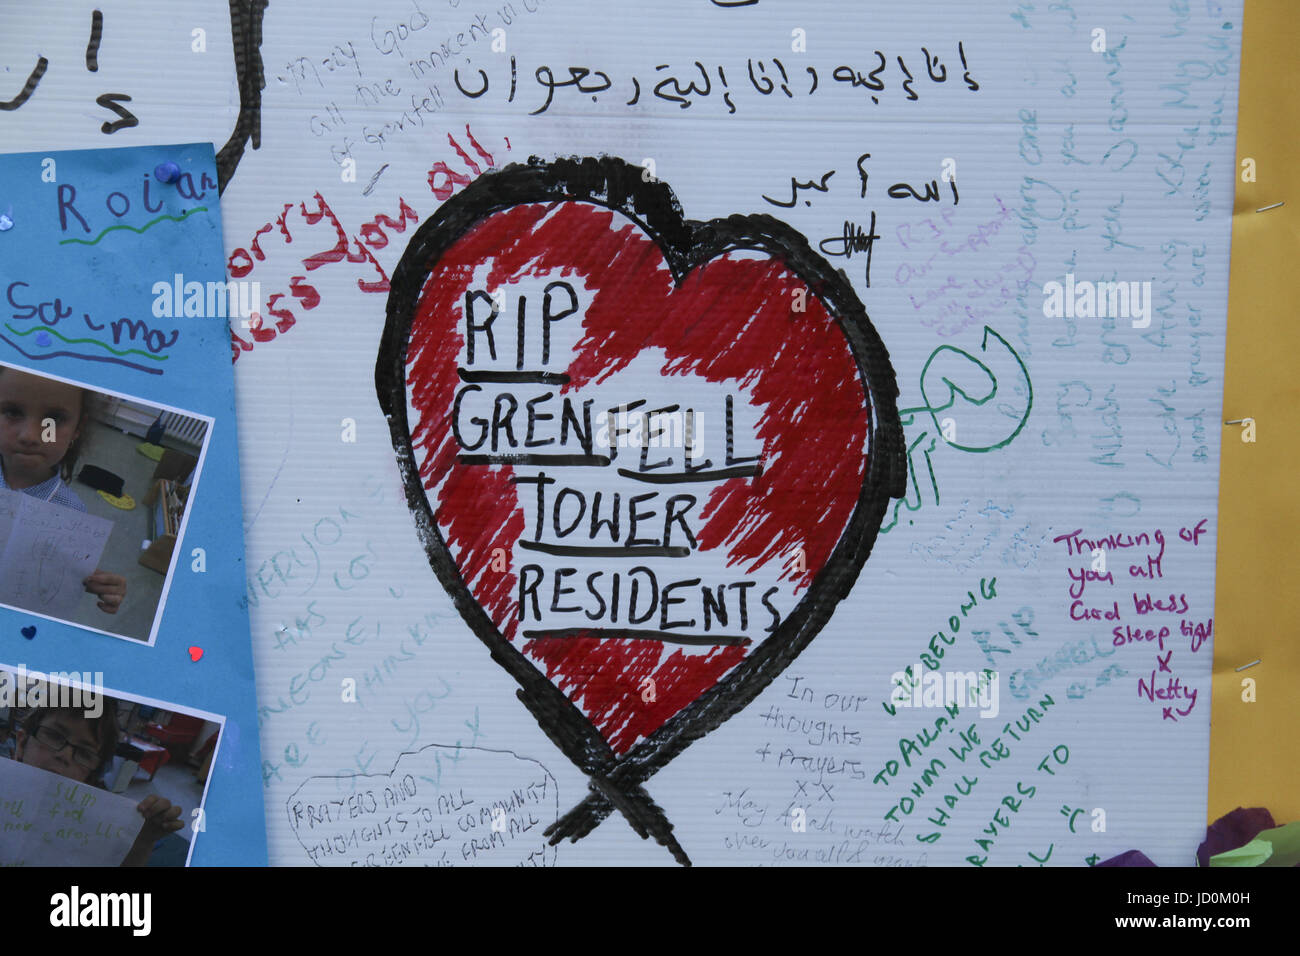 London, UK. 16th June 2017. Messages on a memorial wall in the Latymer area for the Grenfell Tower residents seen - Stock Image